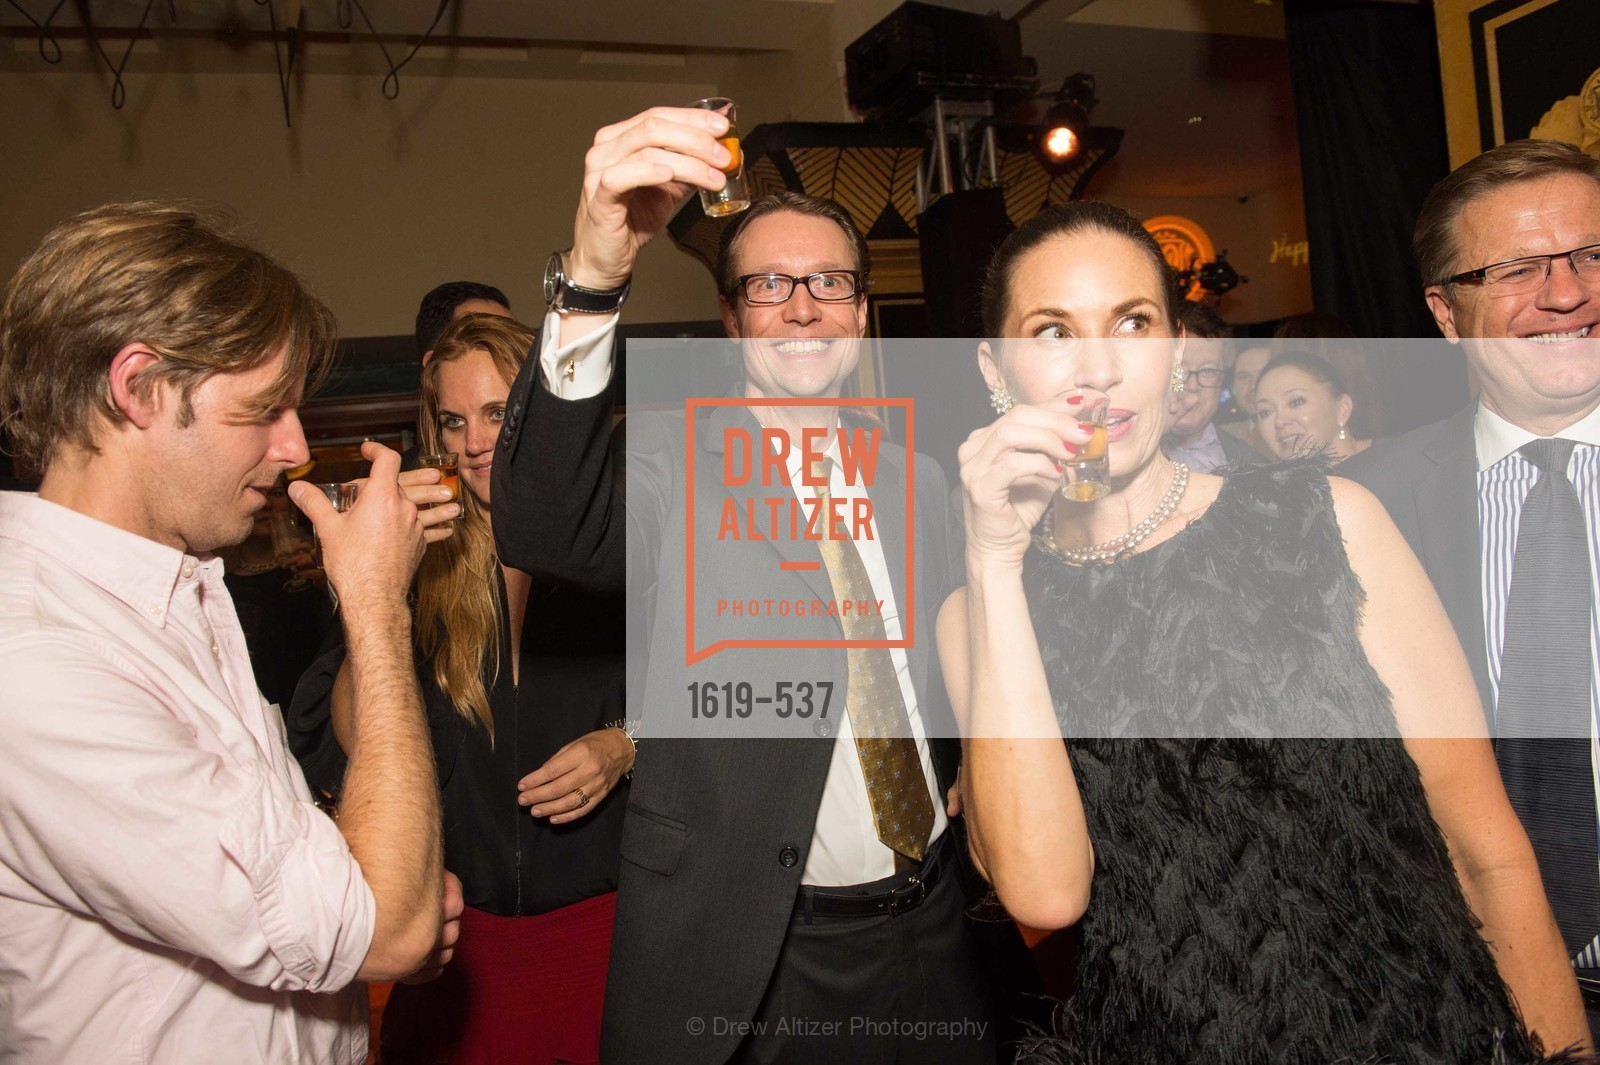 Marcus Drench, TOP OF THE MARK'S 75TH Anniversary Party, US, November 6th, 2014,Drew Altizer, Drew Altizer Photography, full-service agency, private events, San Francisco photographer, photographer california